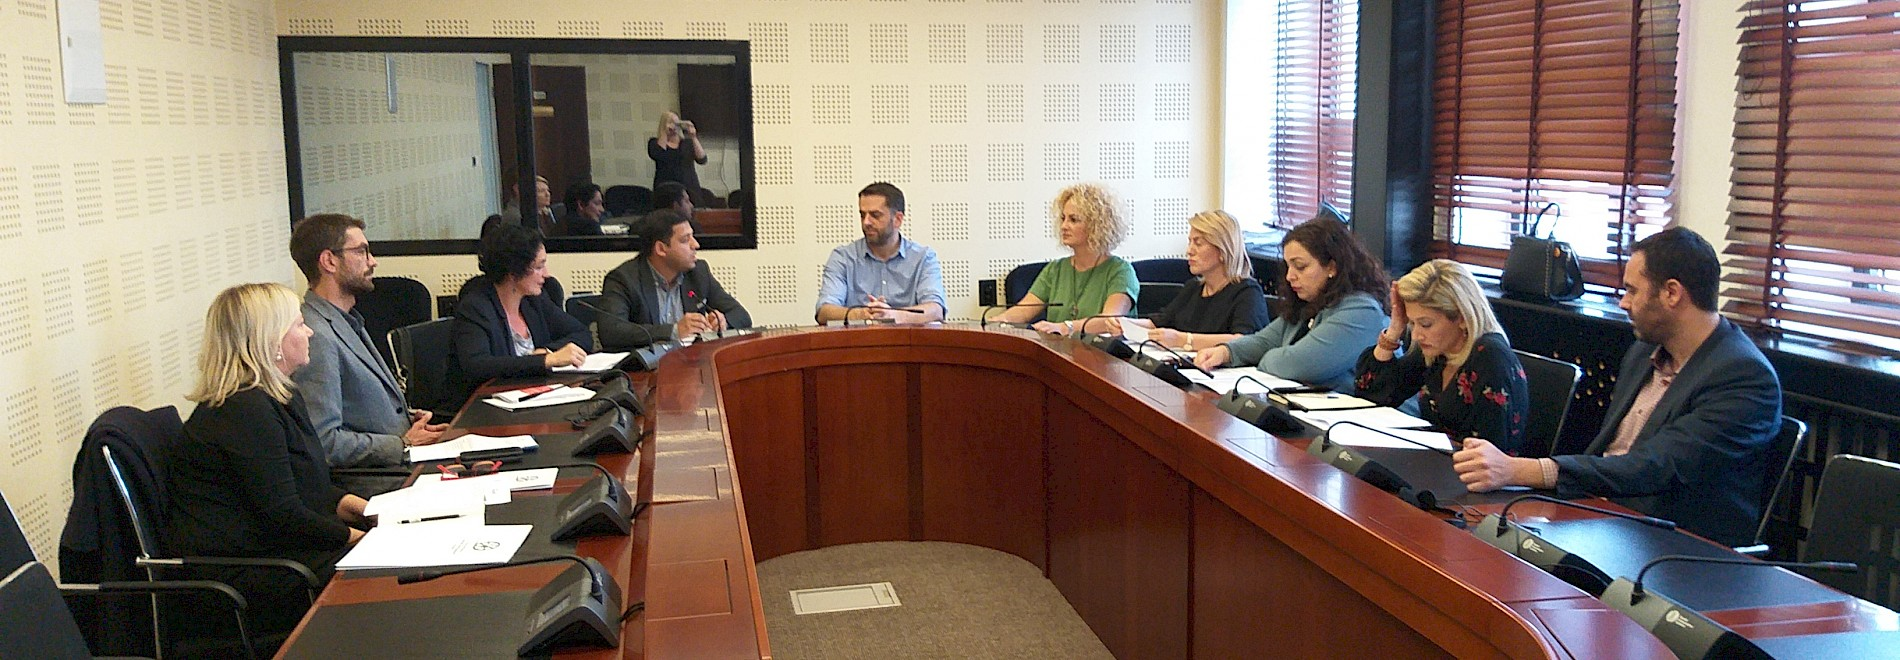 Meeting of Civil Society Organizations with Members of the Assembly of Kosovo